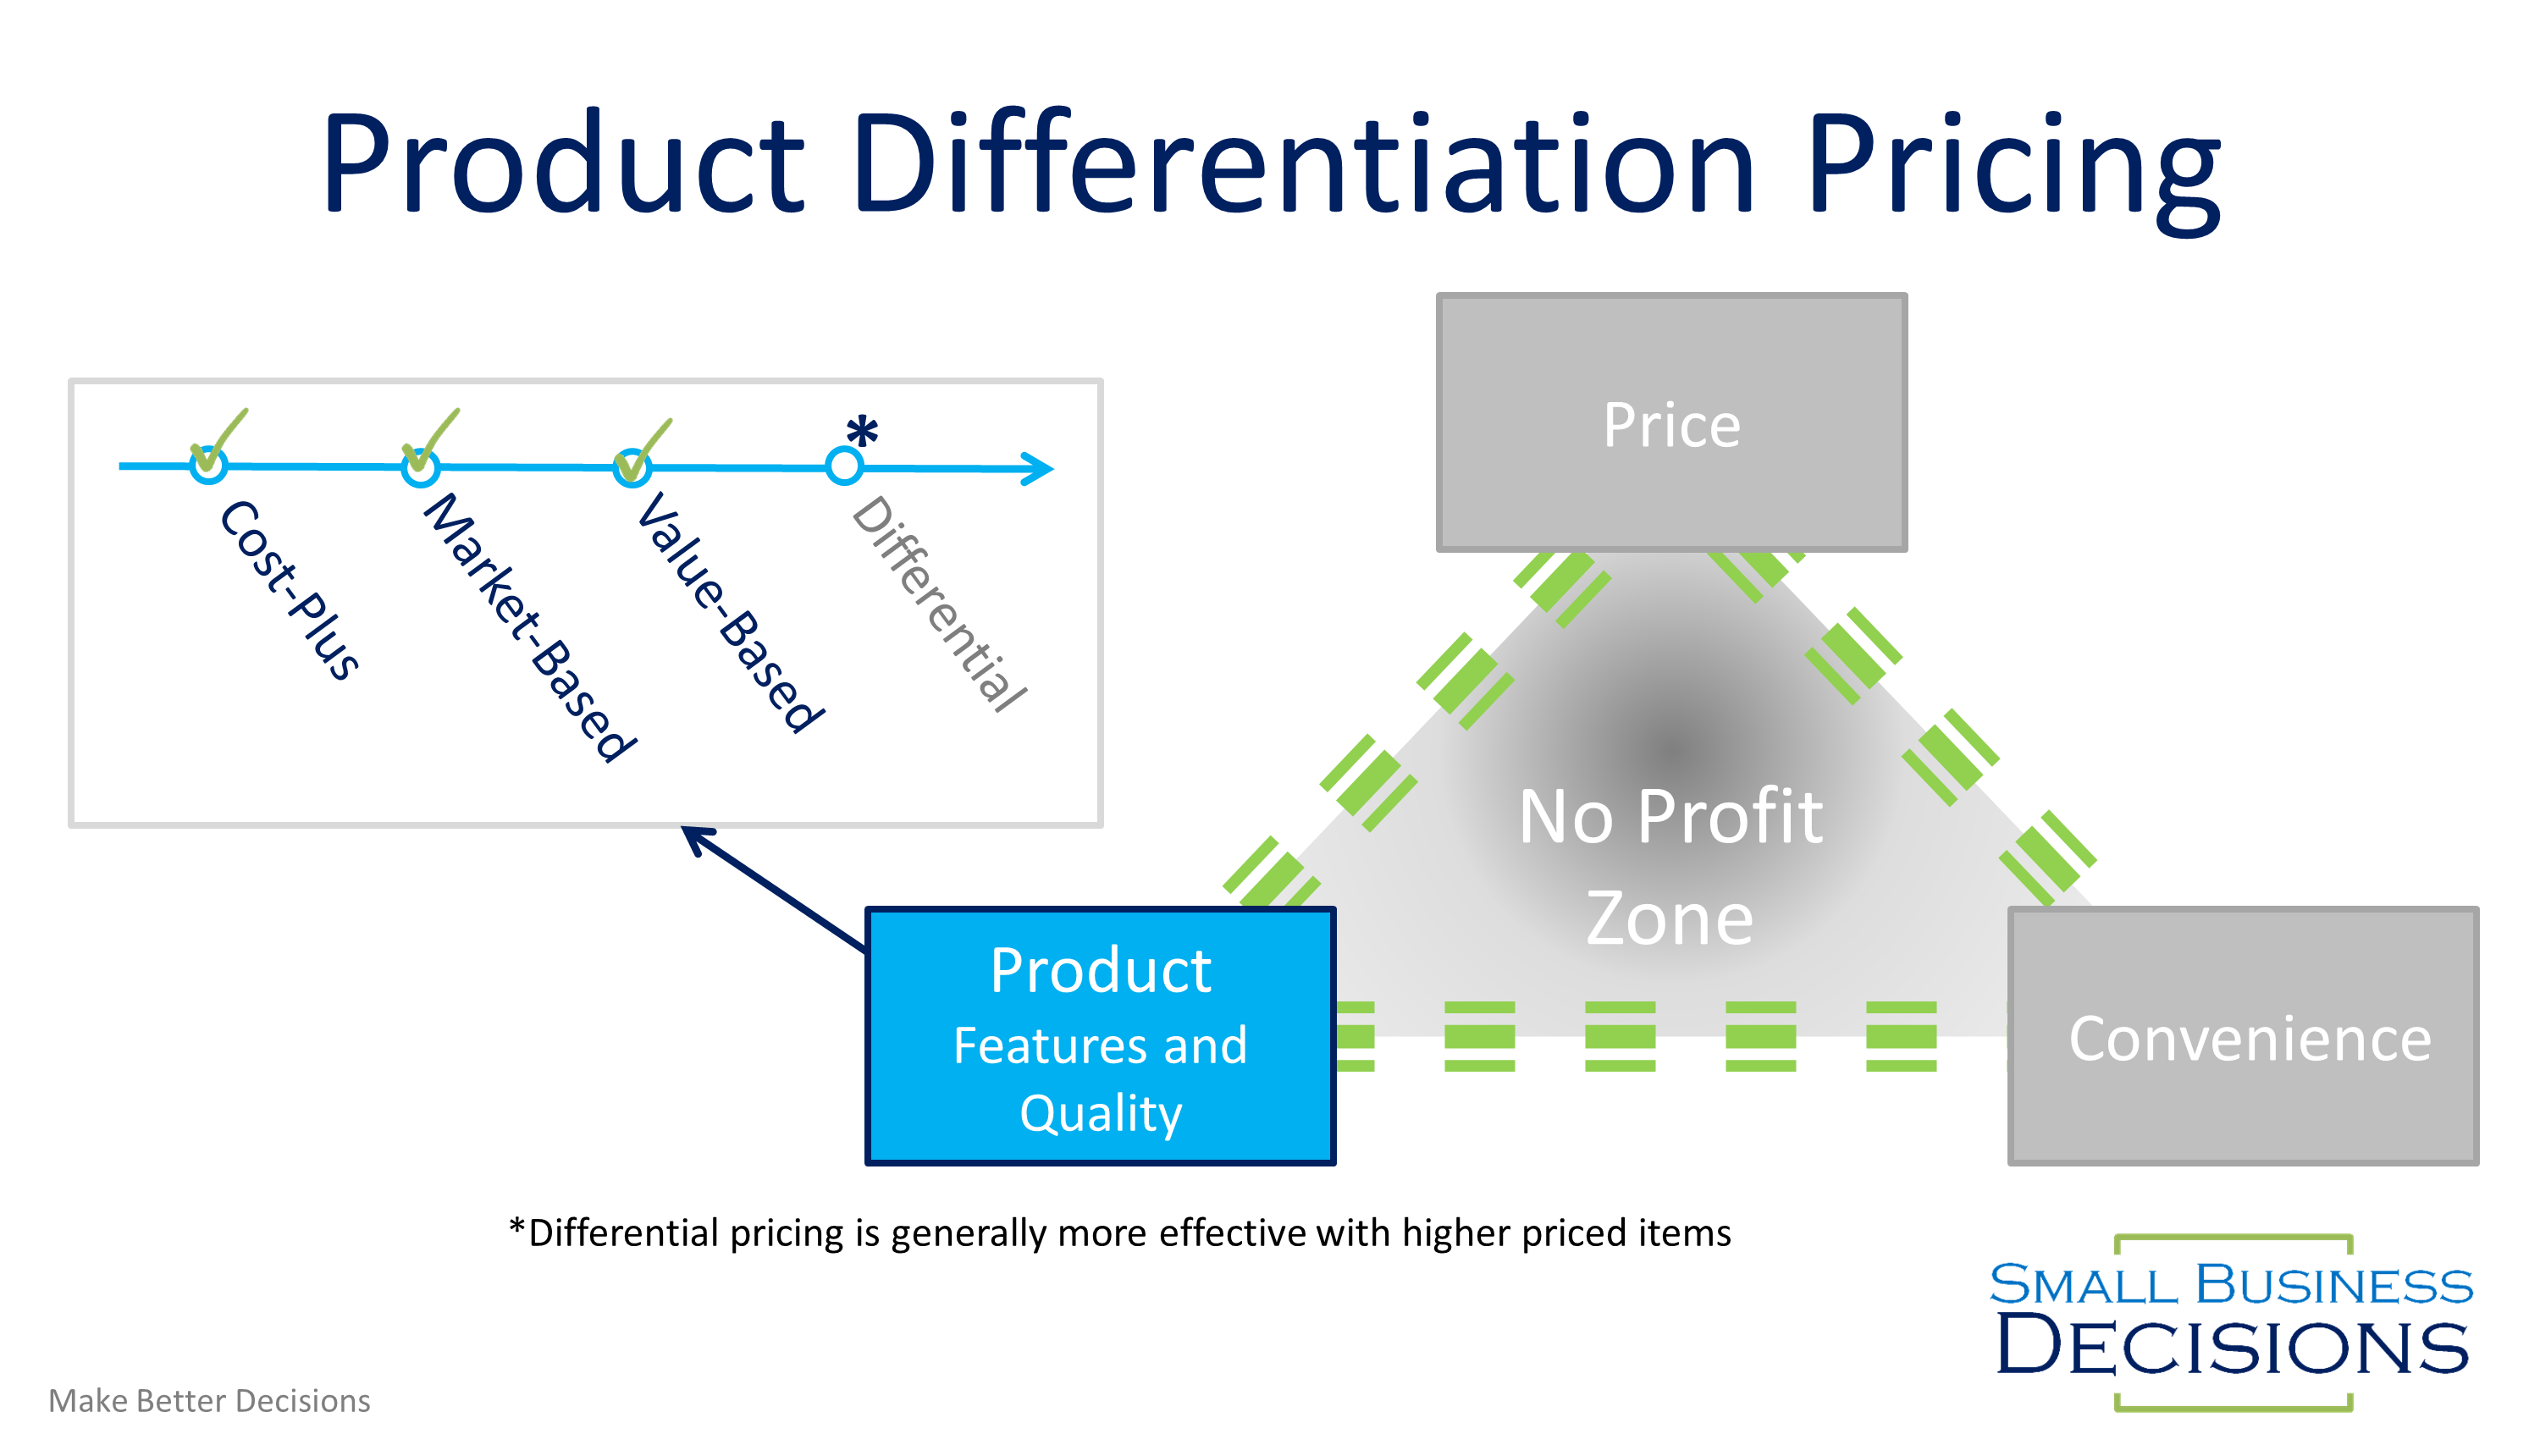 Product Differentiation Pricing Roadmap